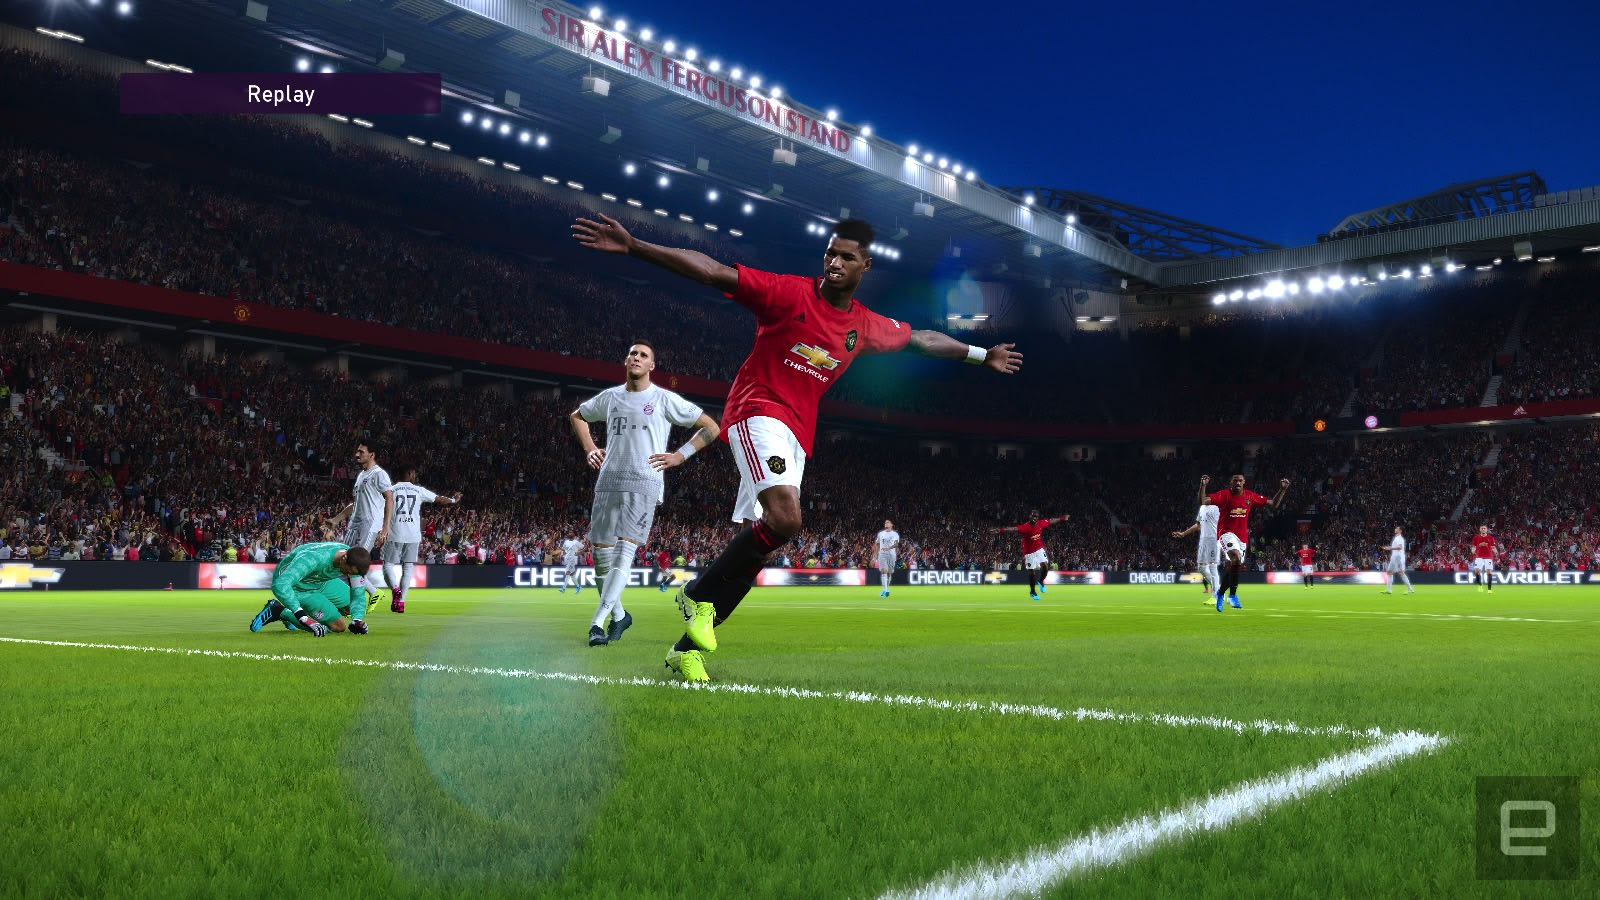 PES 2020' isn't perfect, but it's good enough to rival 'FIFA